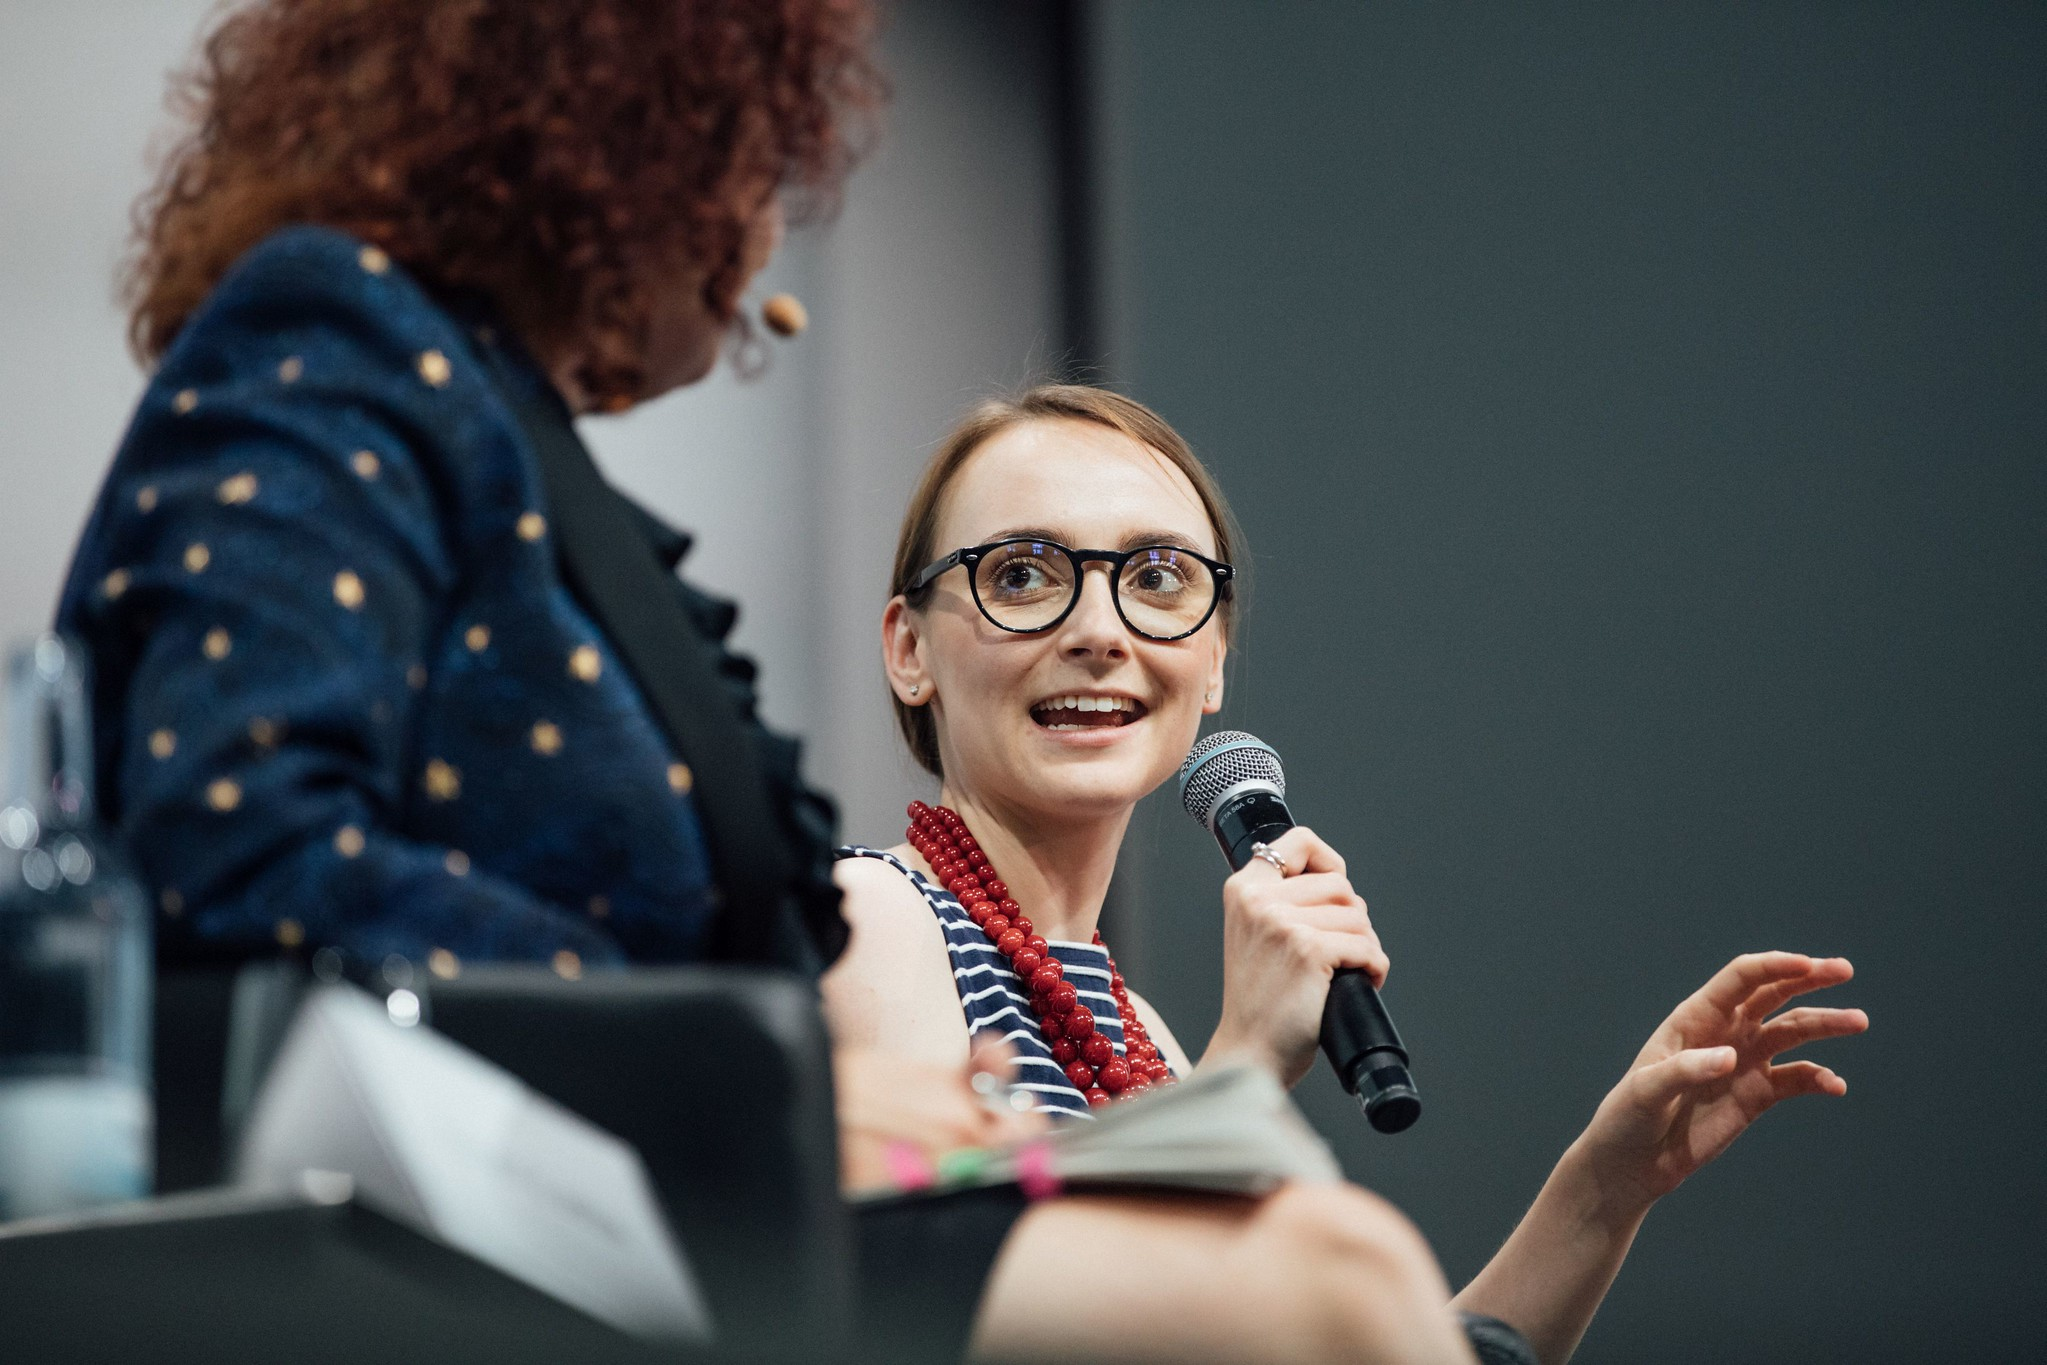 Photo - Maria Zurek, right, speaks during a discussion panel at the Linda Nobel Laureates Meeting. (Credit: Julia Nimke/Lindau Nobel Laureate Meetings)